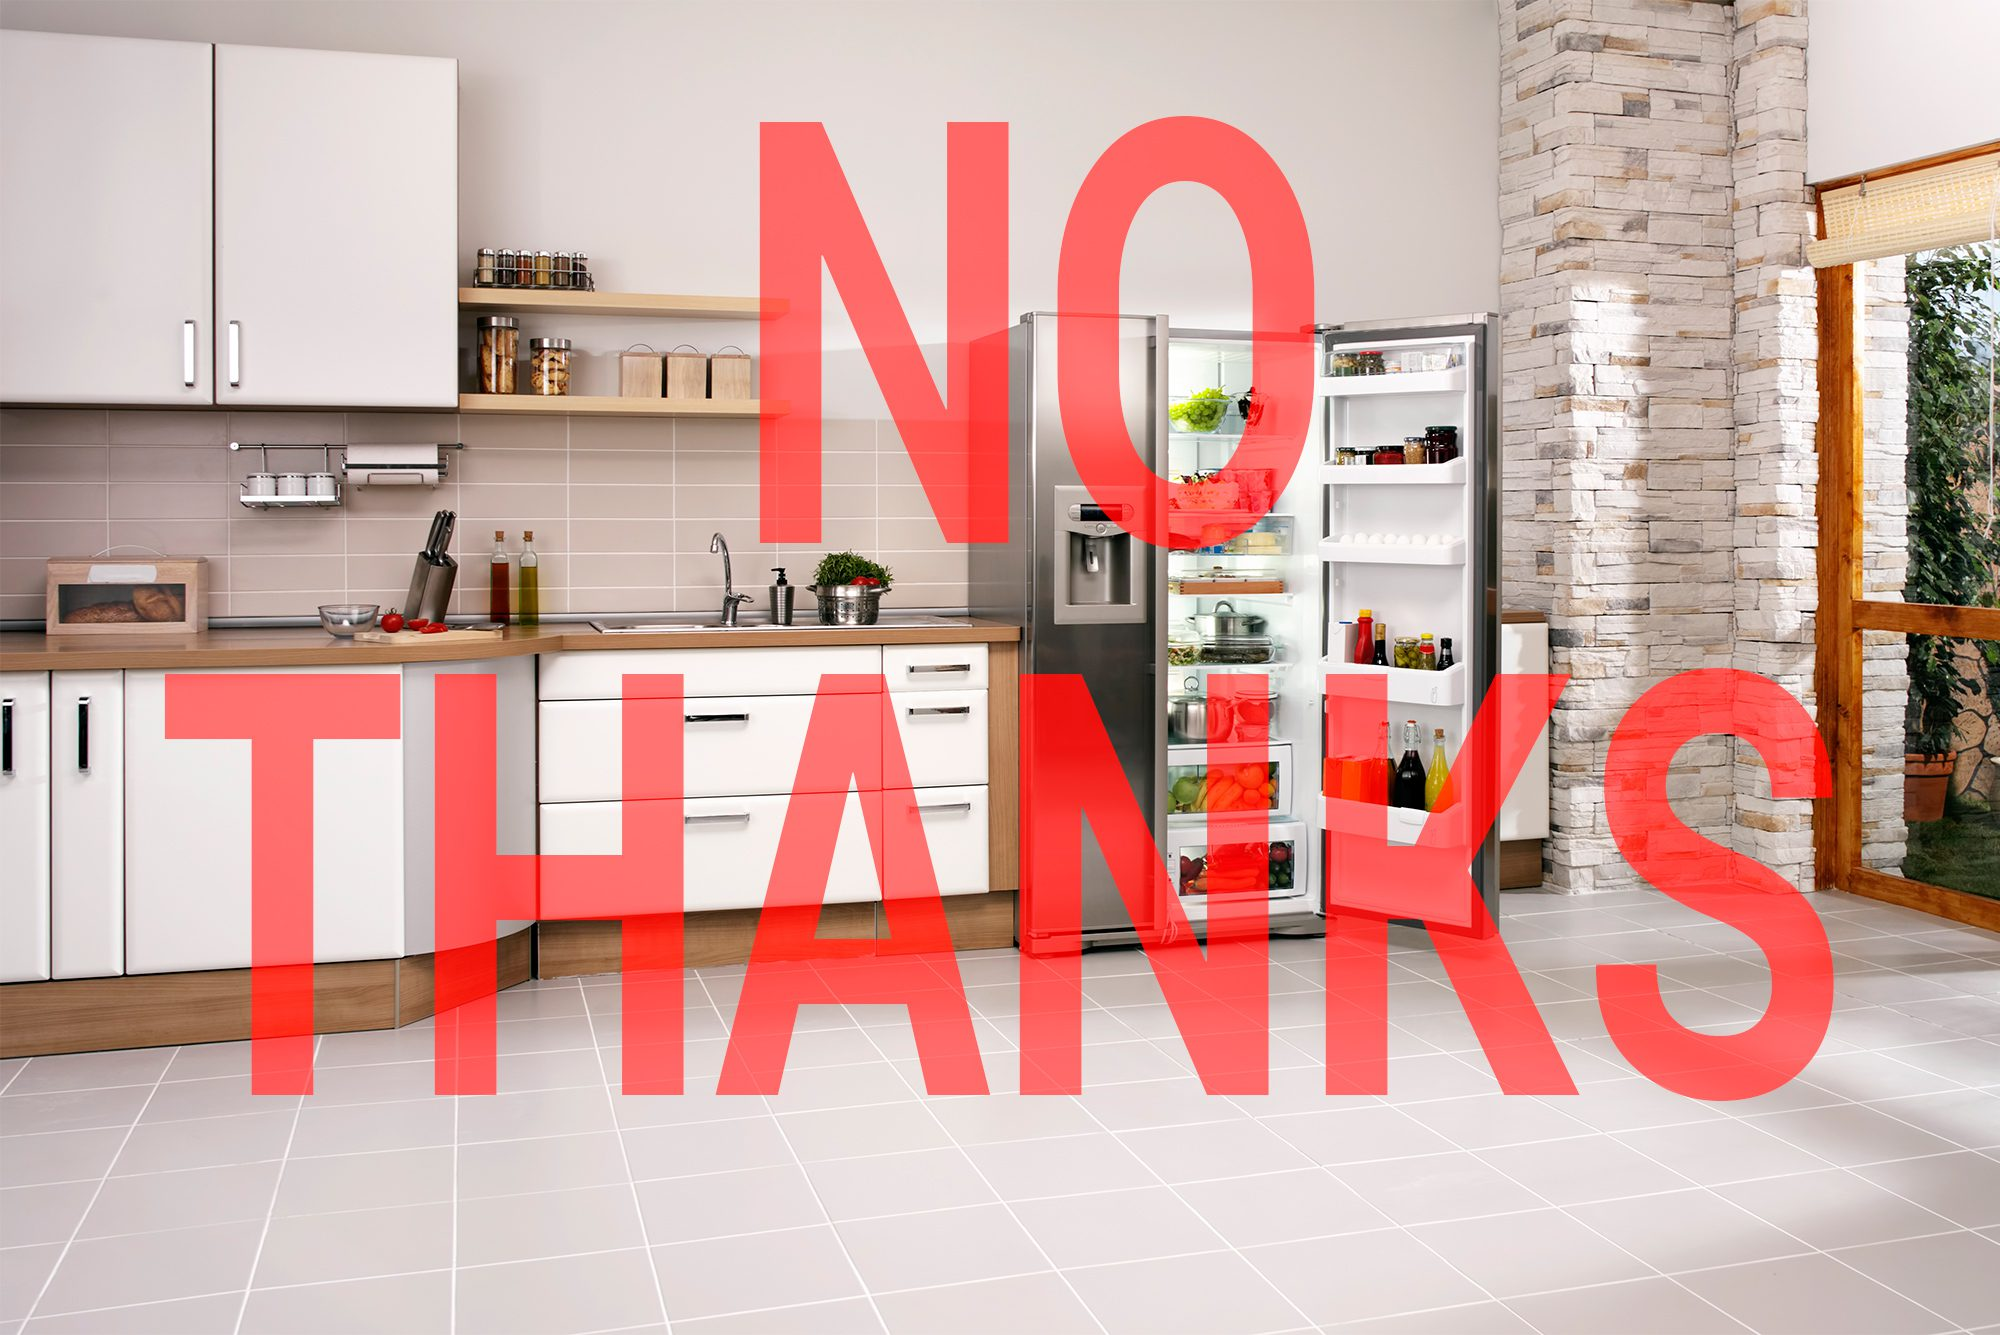 why open kitchens are bad and closed kitchens are good | realtor®